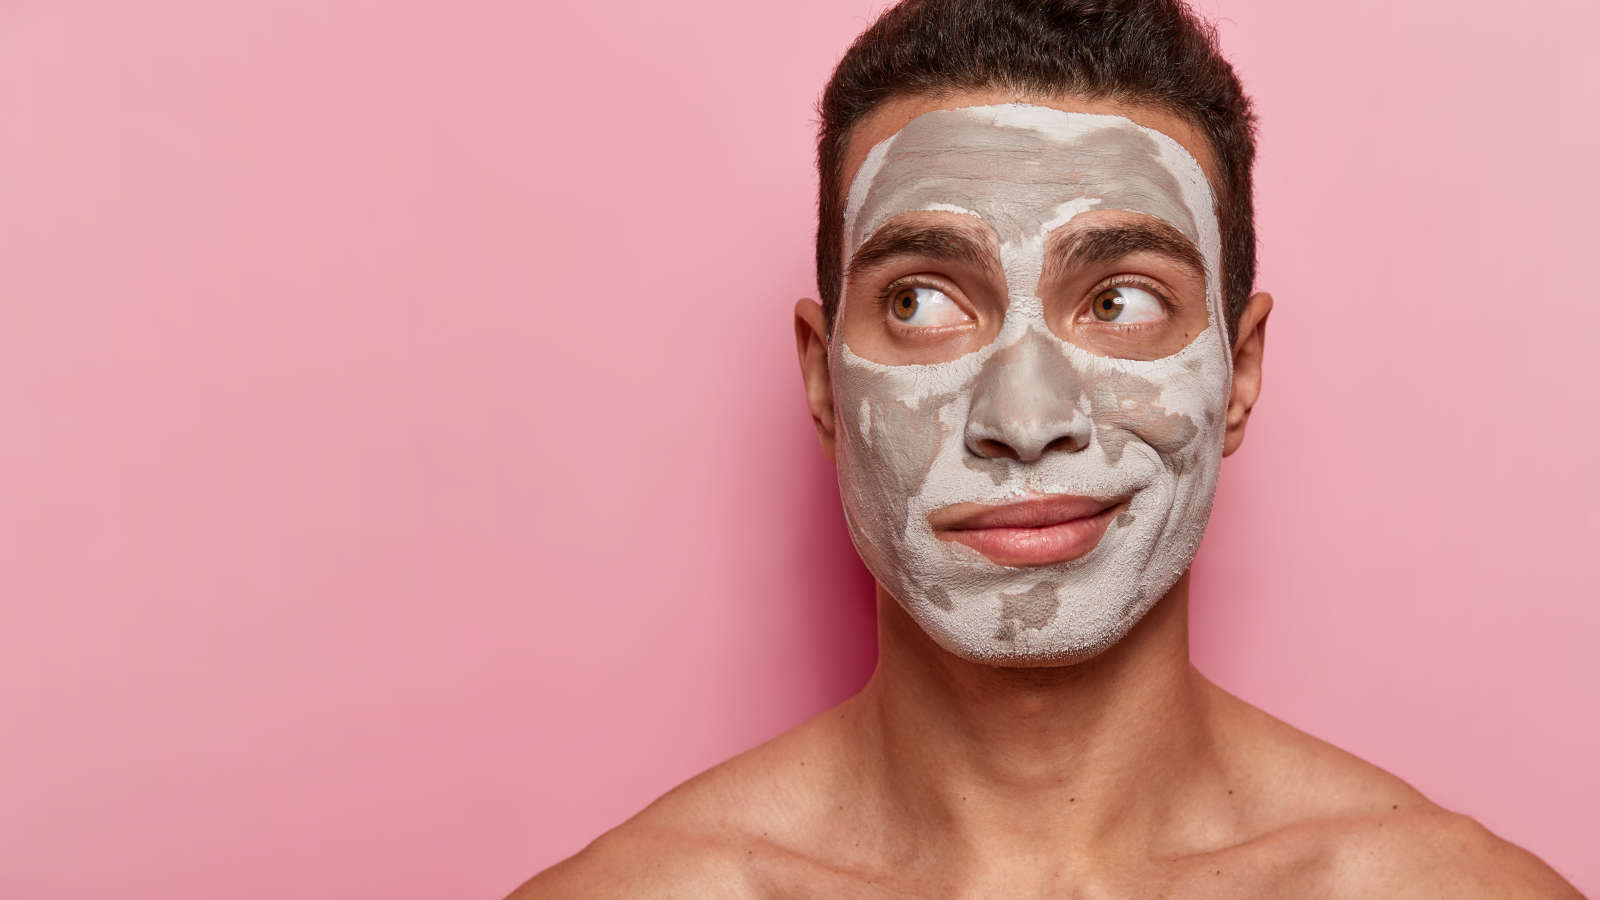 Men Don't Need 'Masculine' Beauty Products